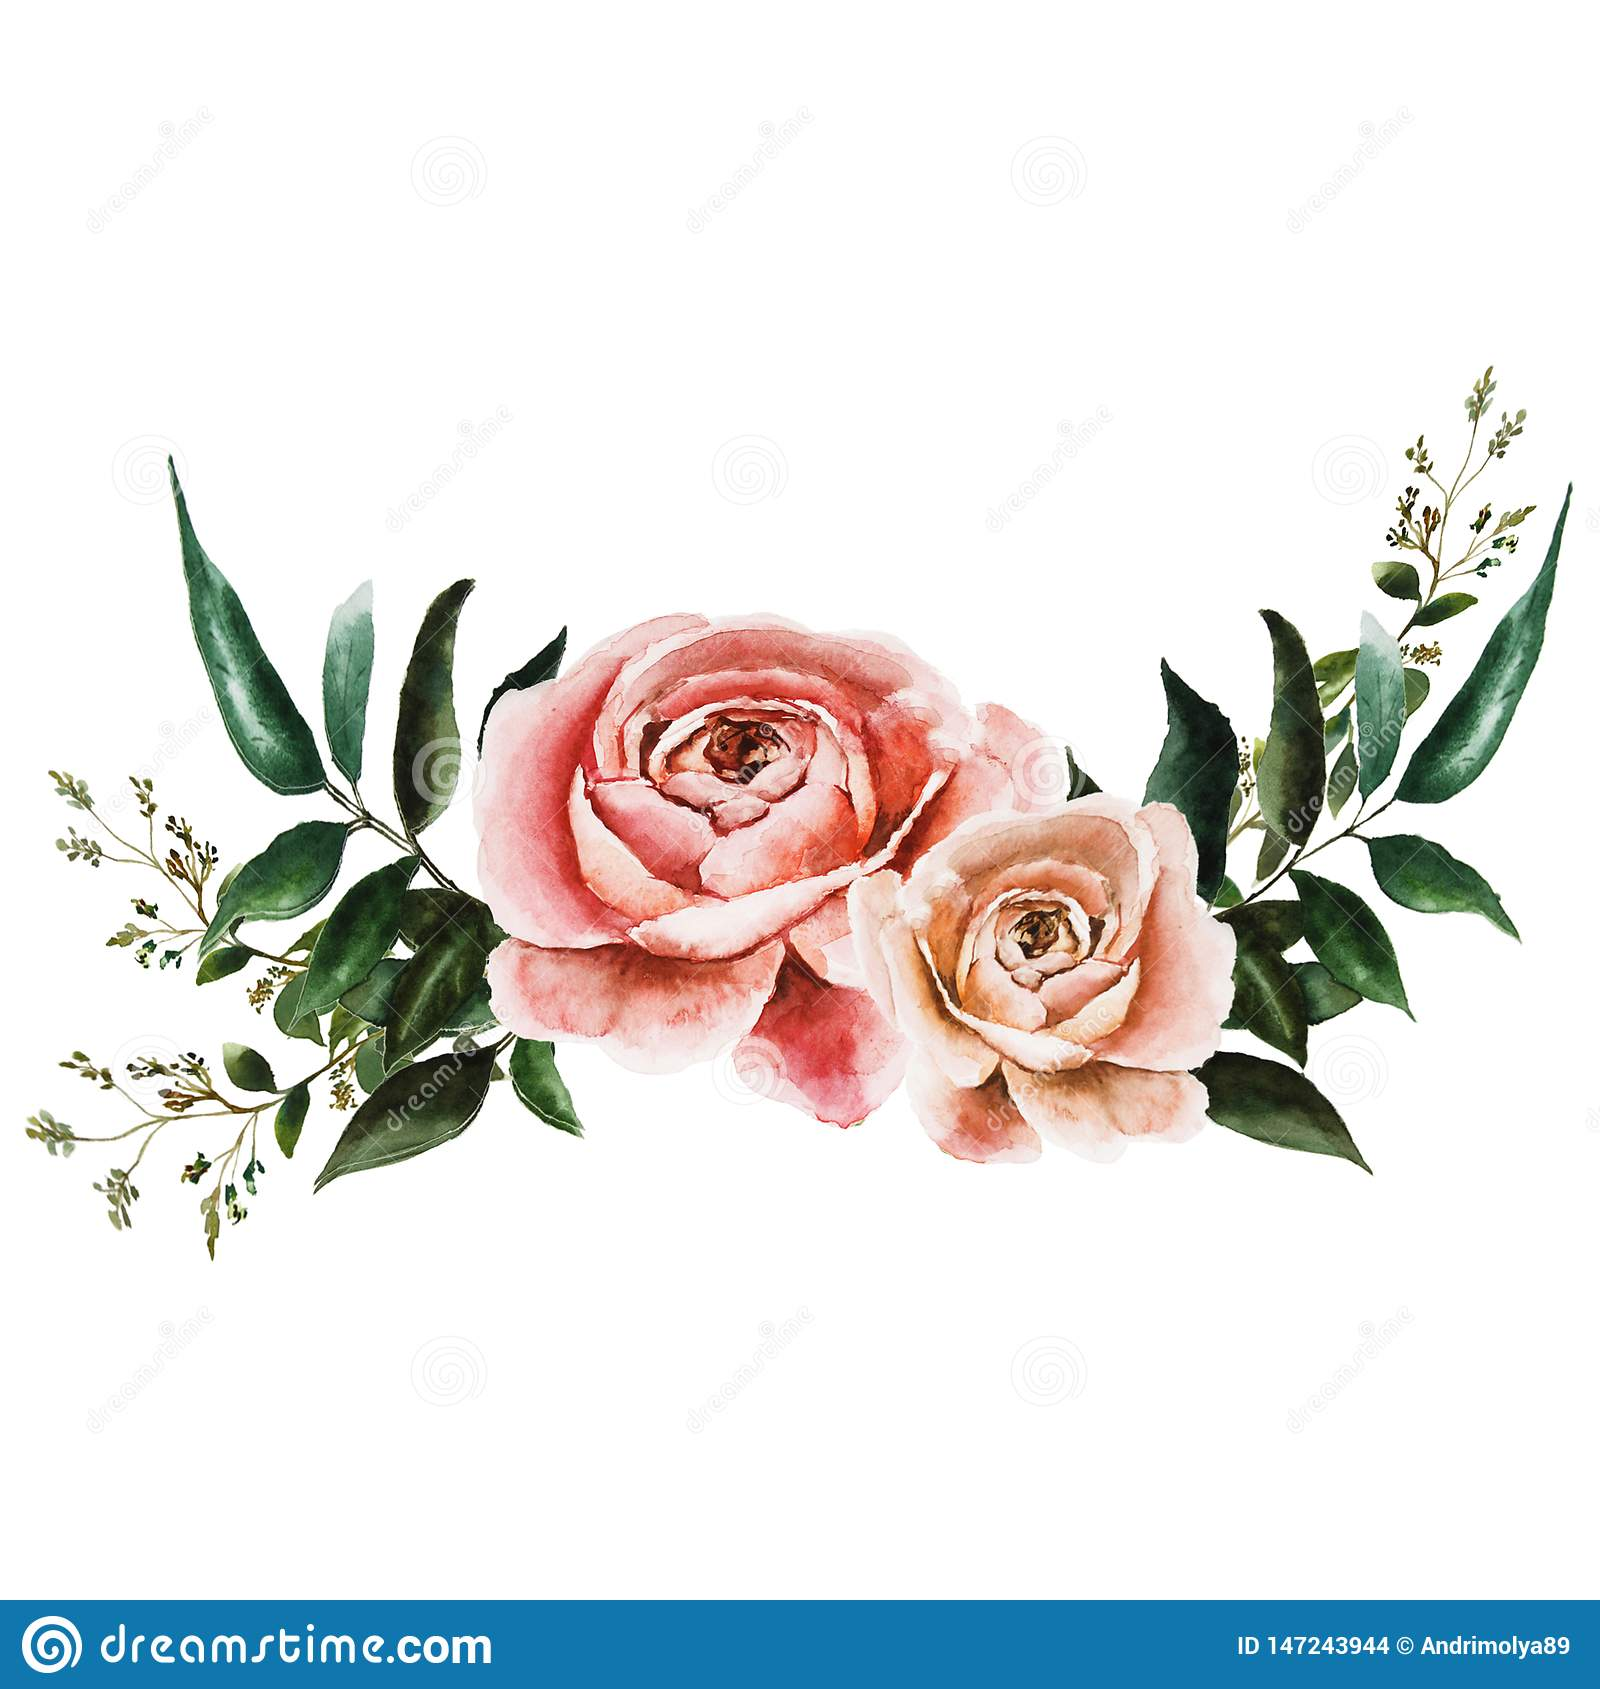 Illustration with roses